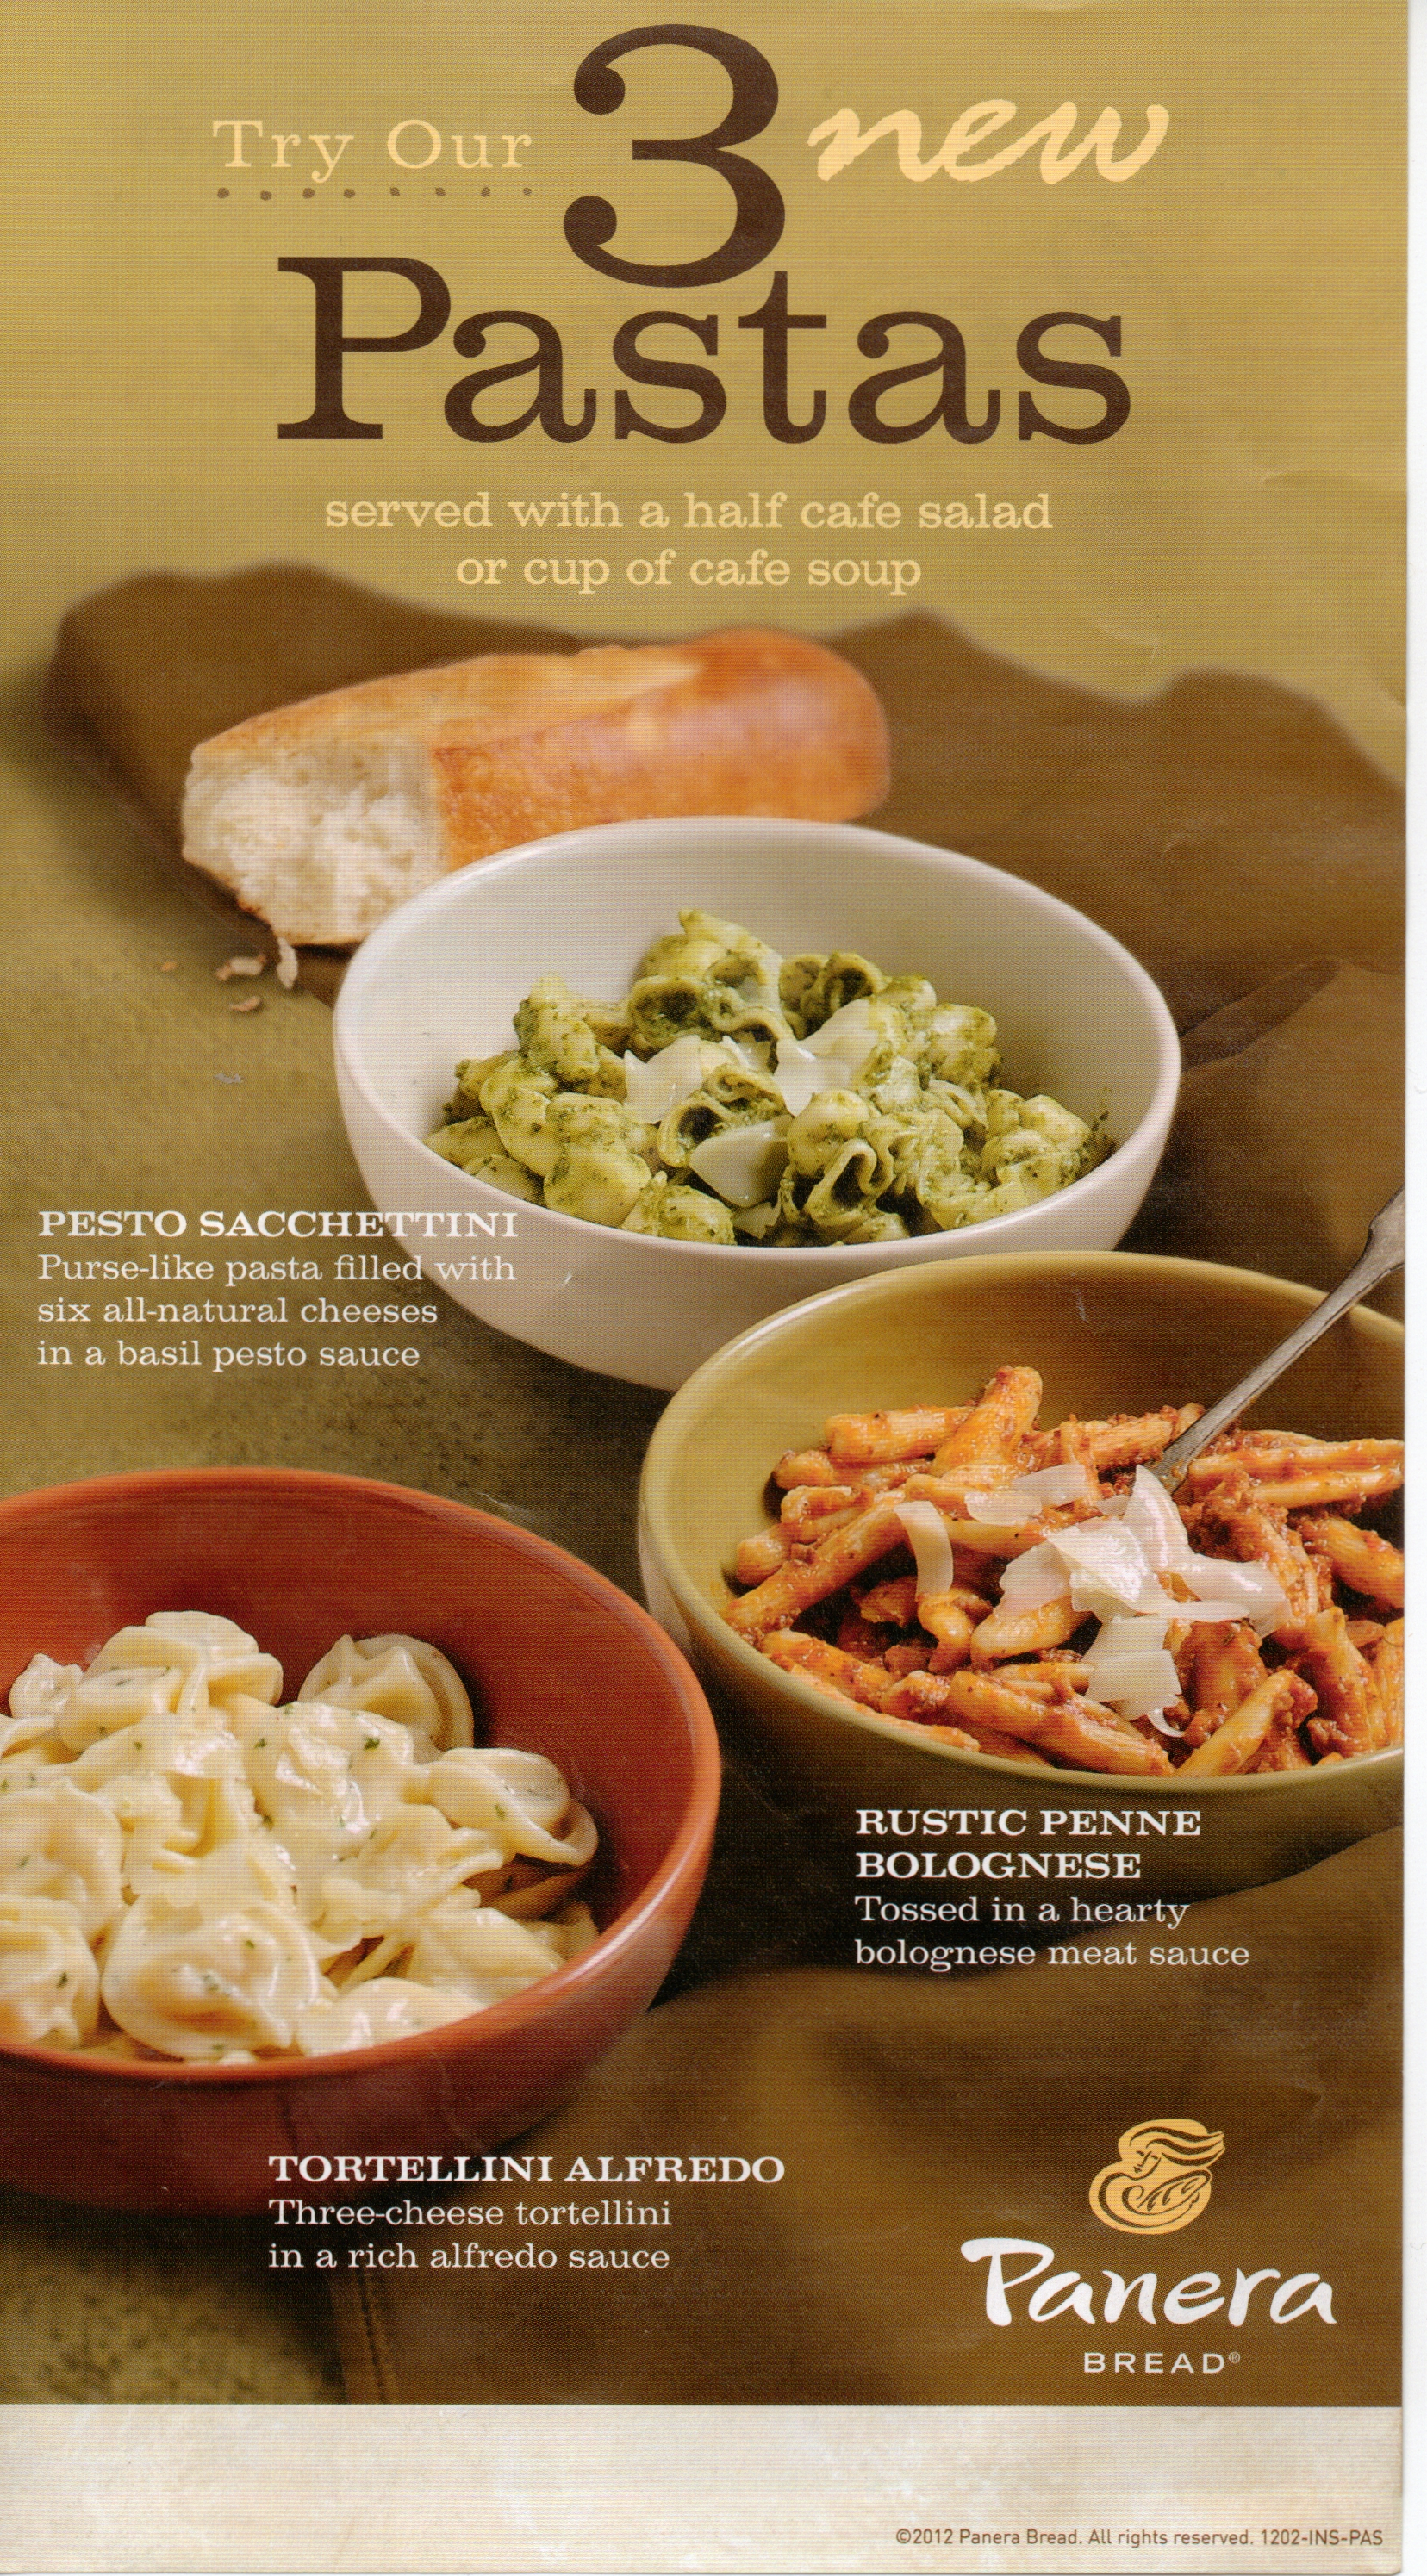 New Pasta At Panera Bread